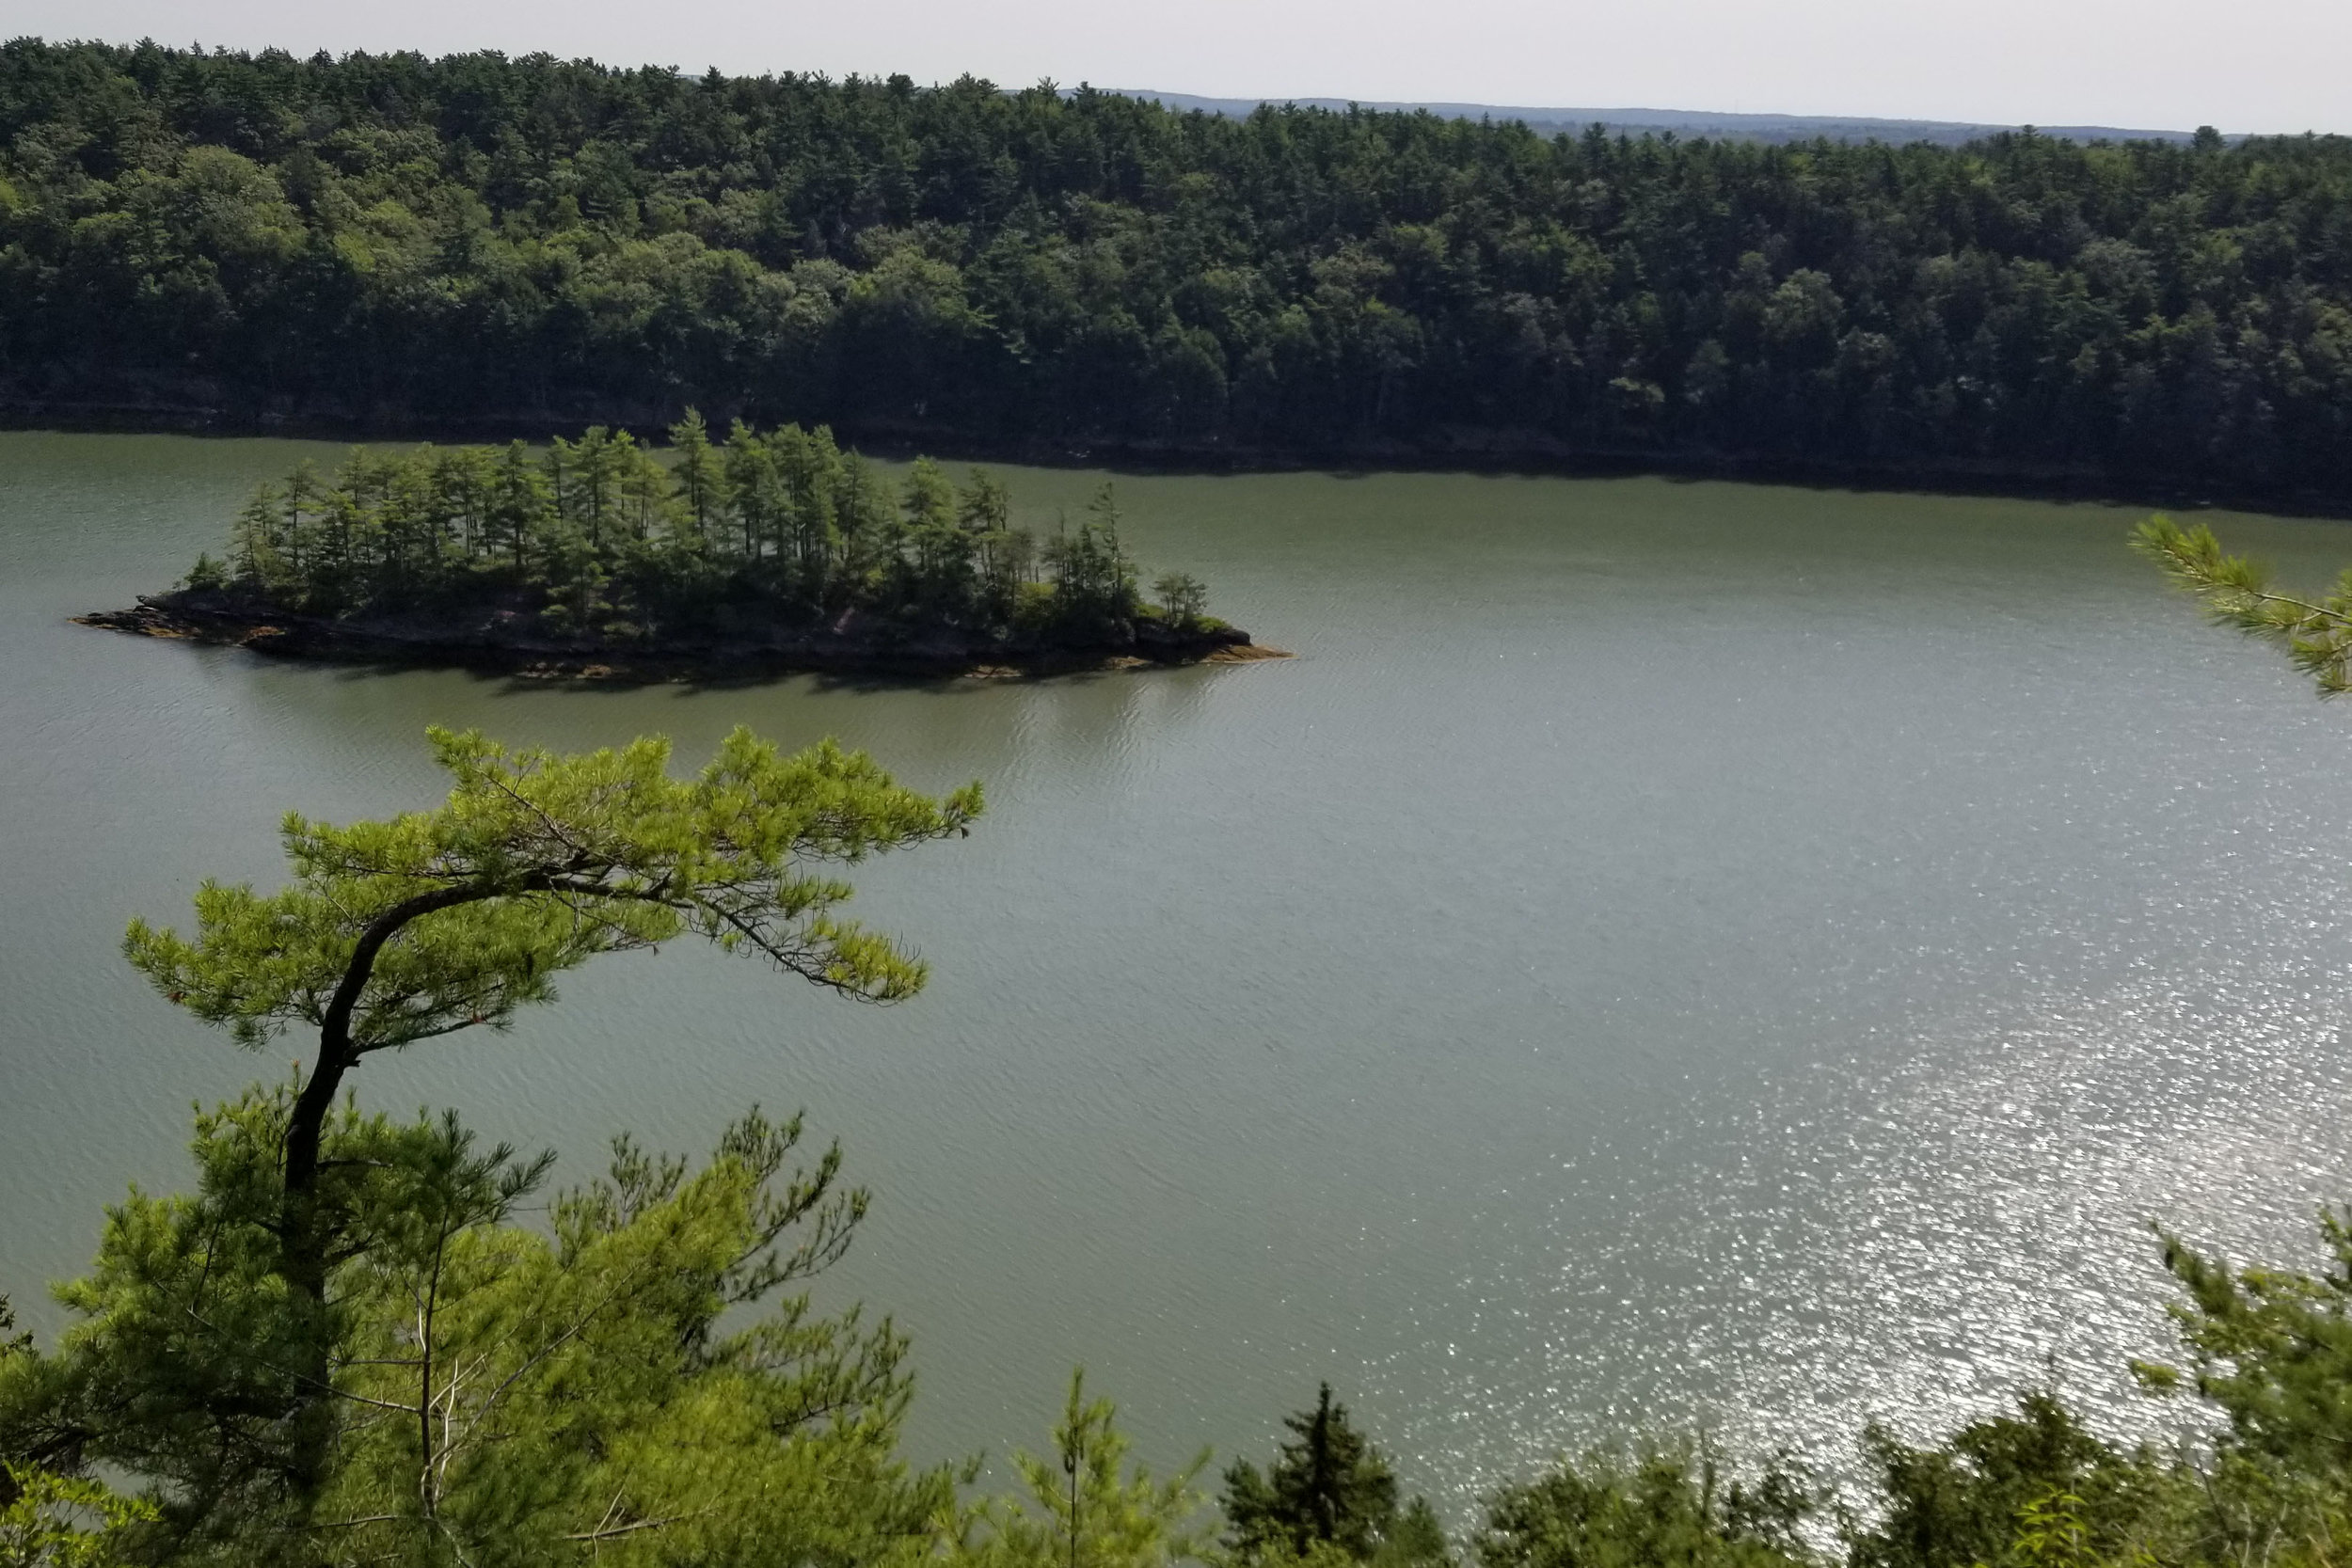 Harpswell Cliff Trail and Long Reach Mountain Trail - Harpswell, Maine Hiking | Laurel and Iron